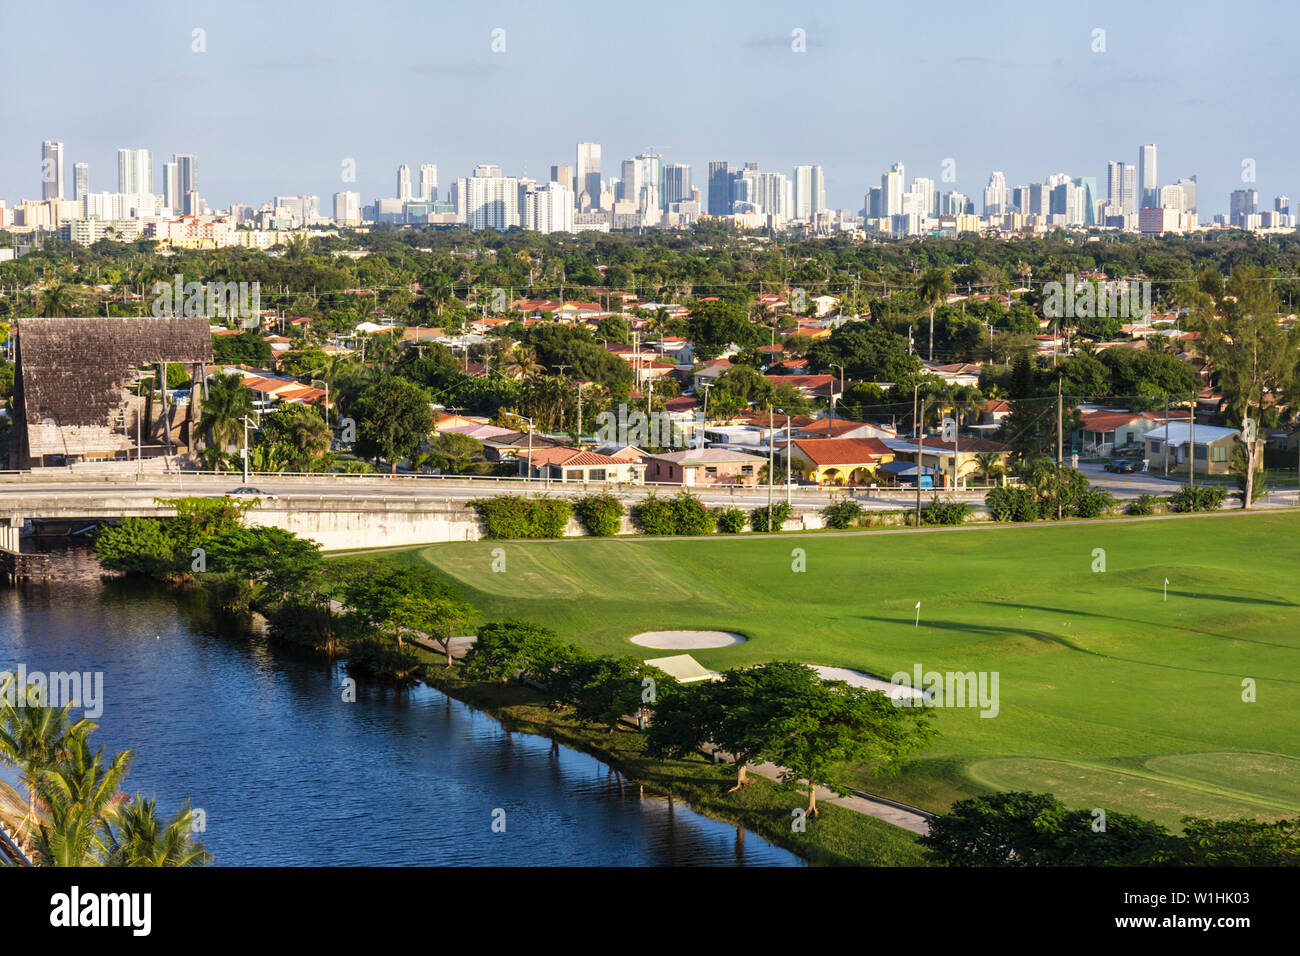 Miami Florida canal downtown skyline buildings panoramic urban golf course trees green houses Stock Photo